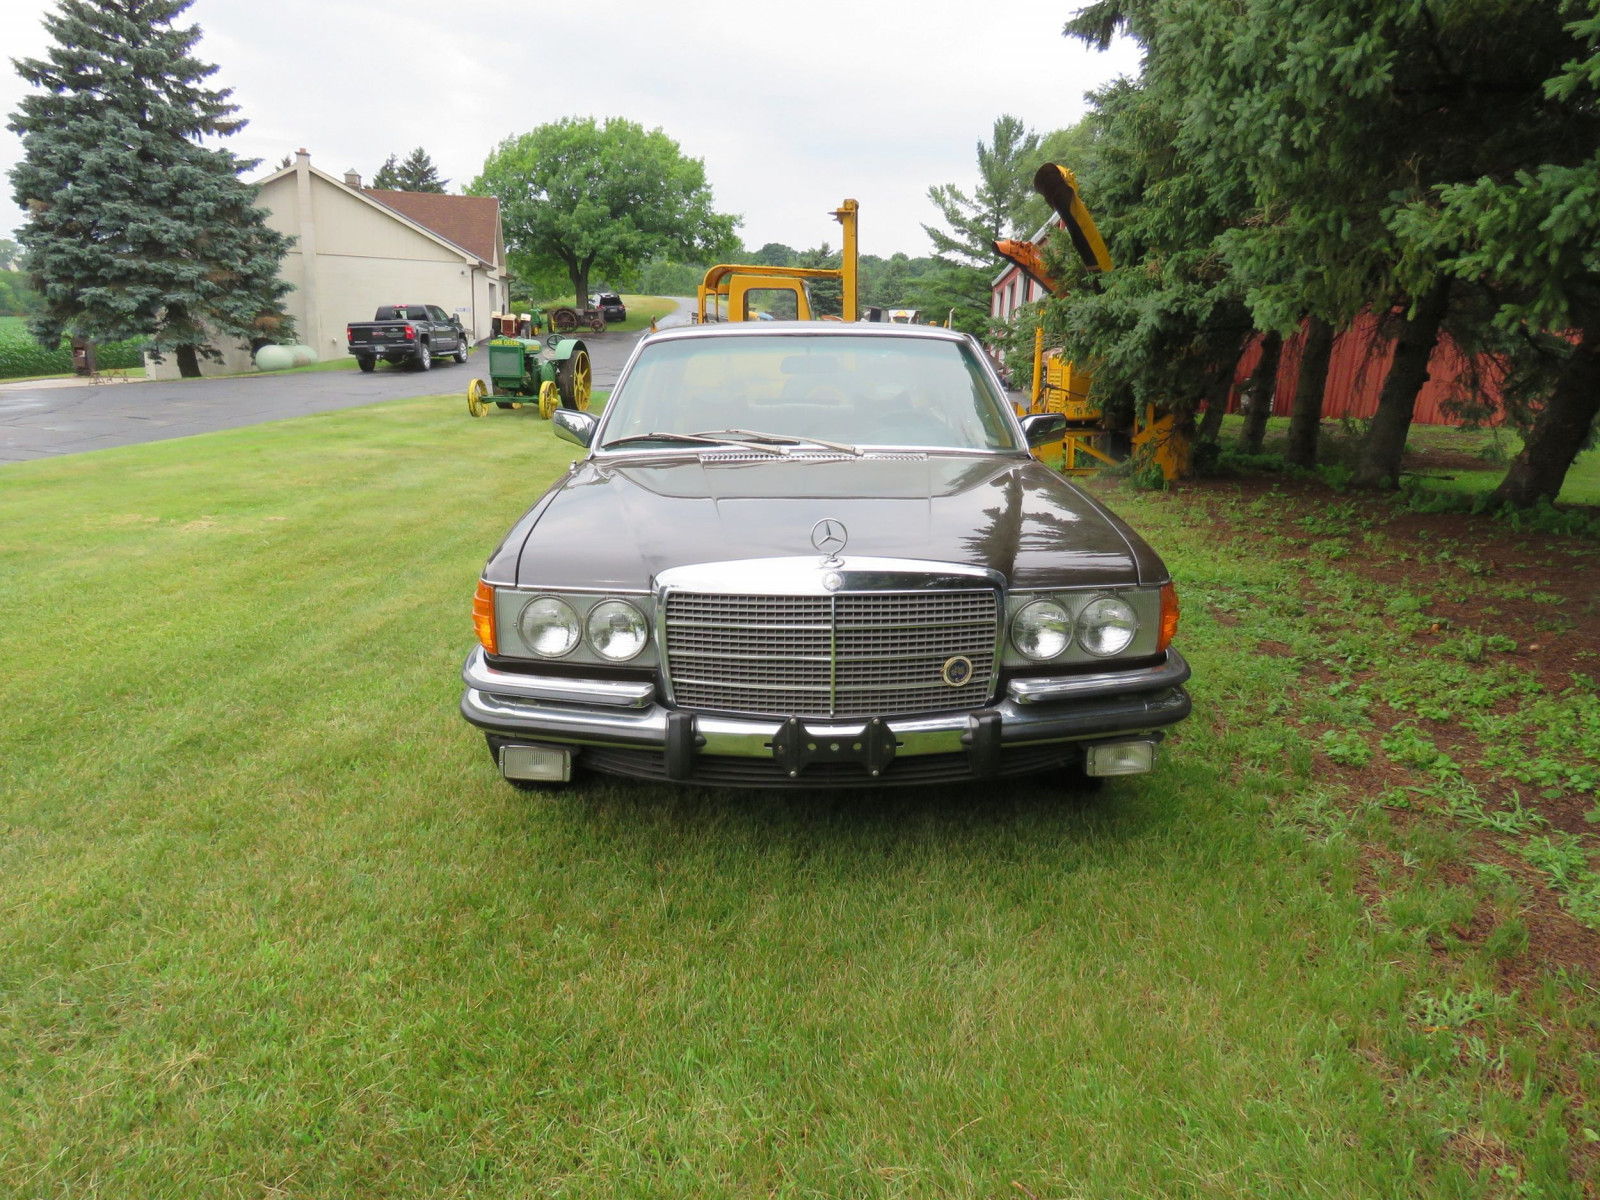 1973 Mercedes 450 SE 4dr Sedan - Image 2